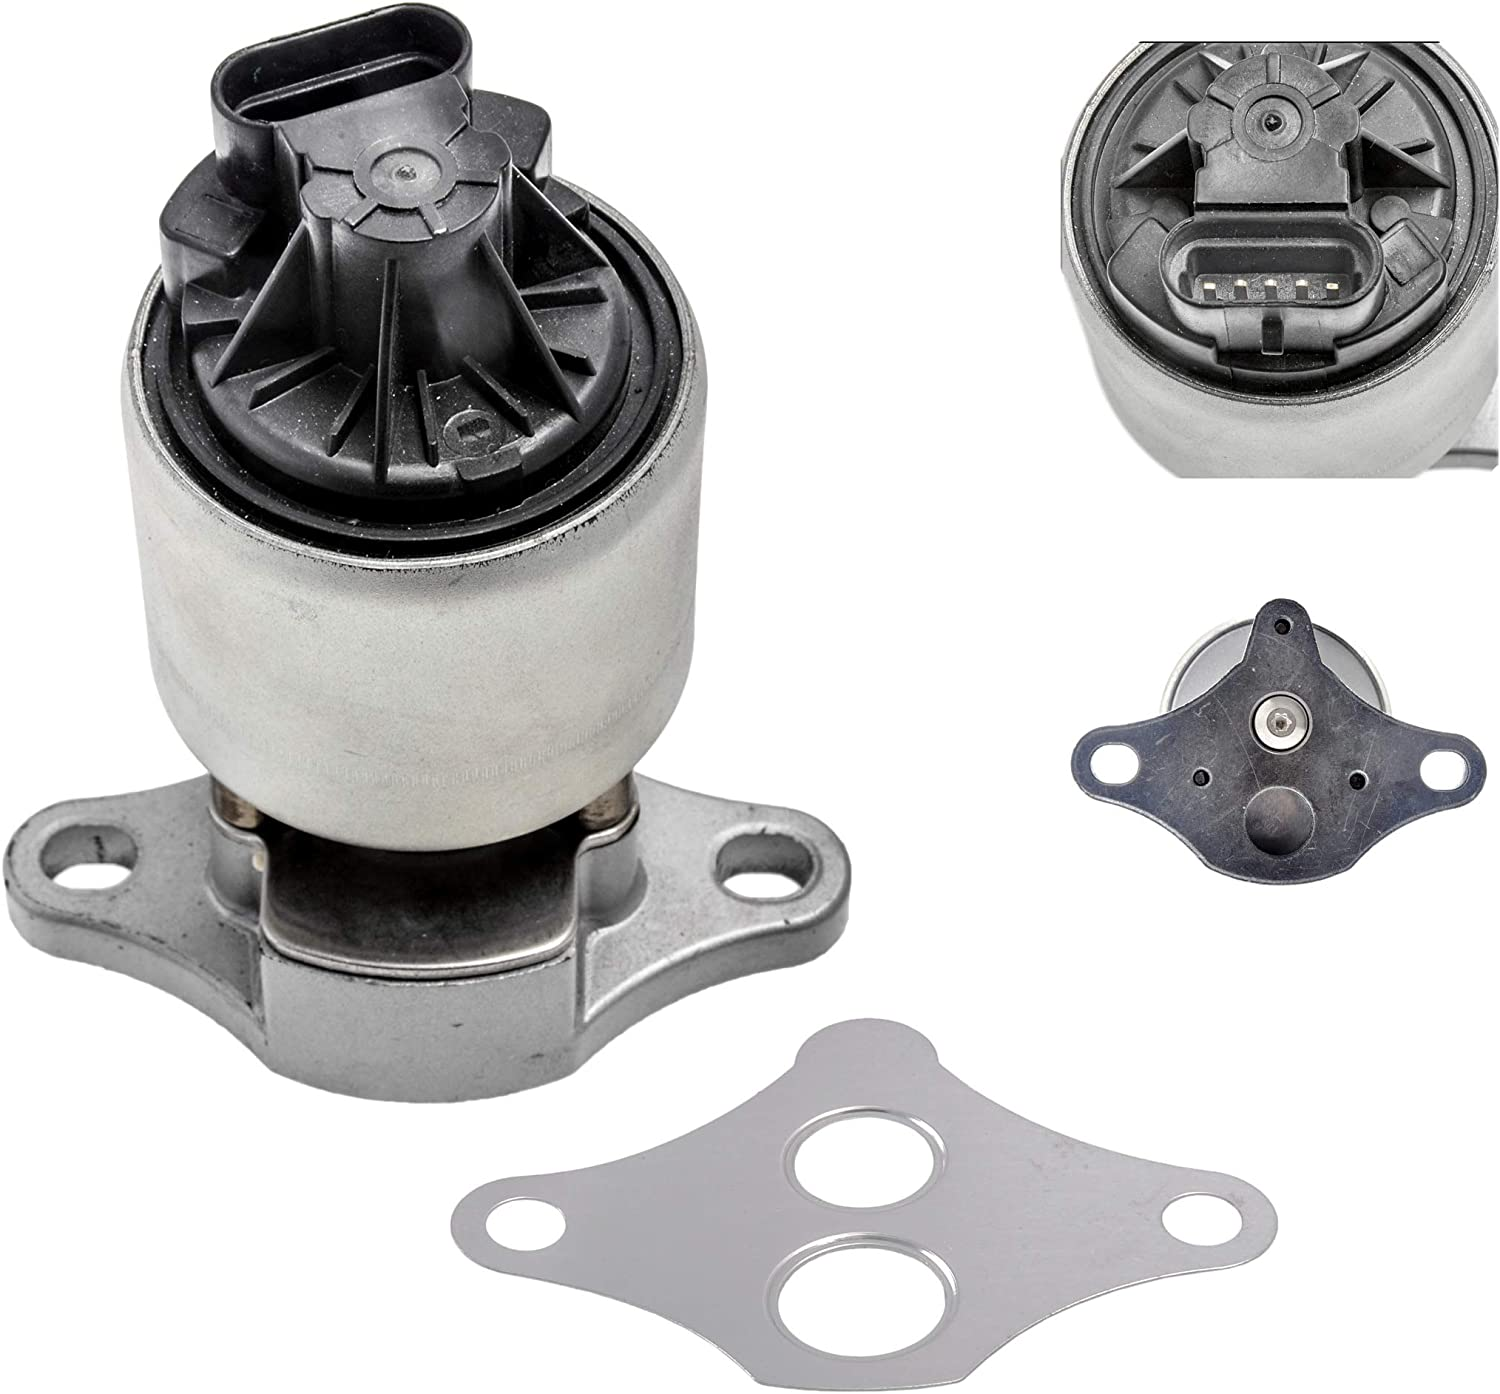 New EGR Exhaust Gas Valve With Gasket For Buick Chevy Olds GMC Pontiac 2.2 2.4